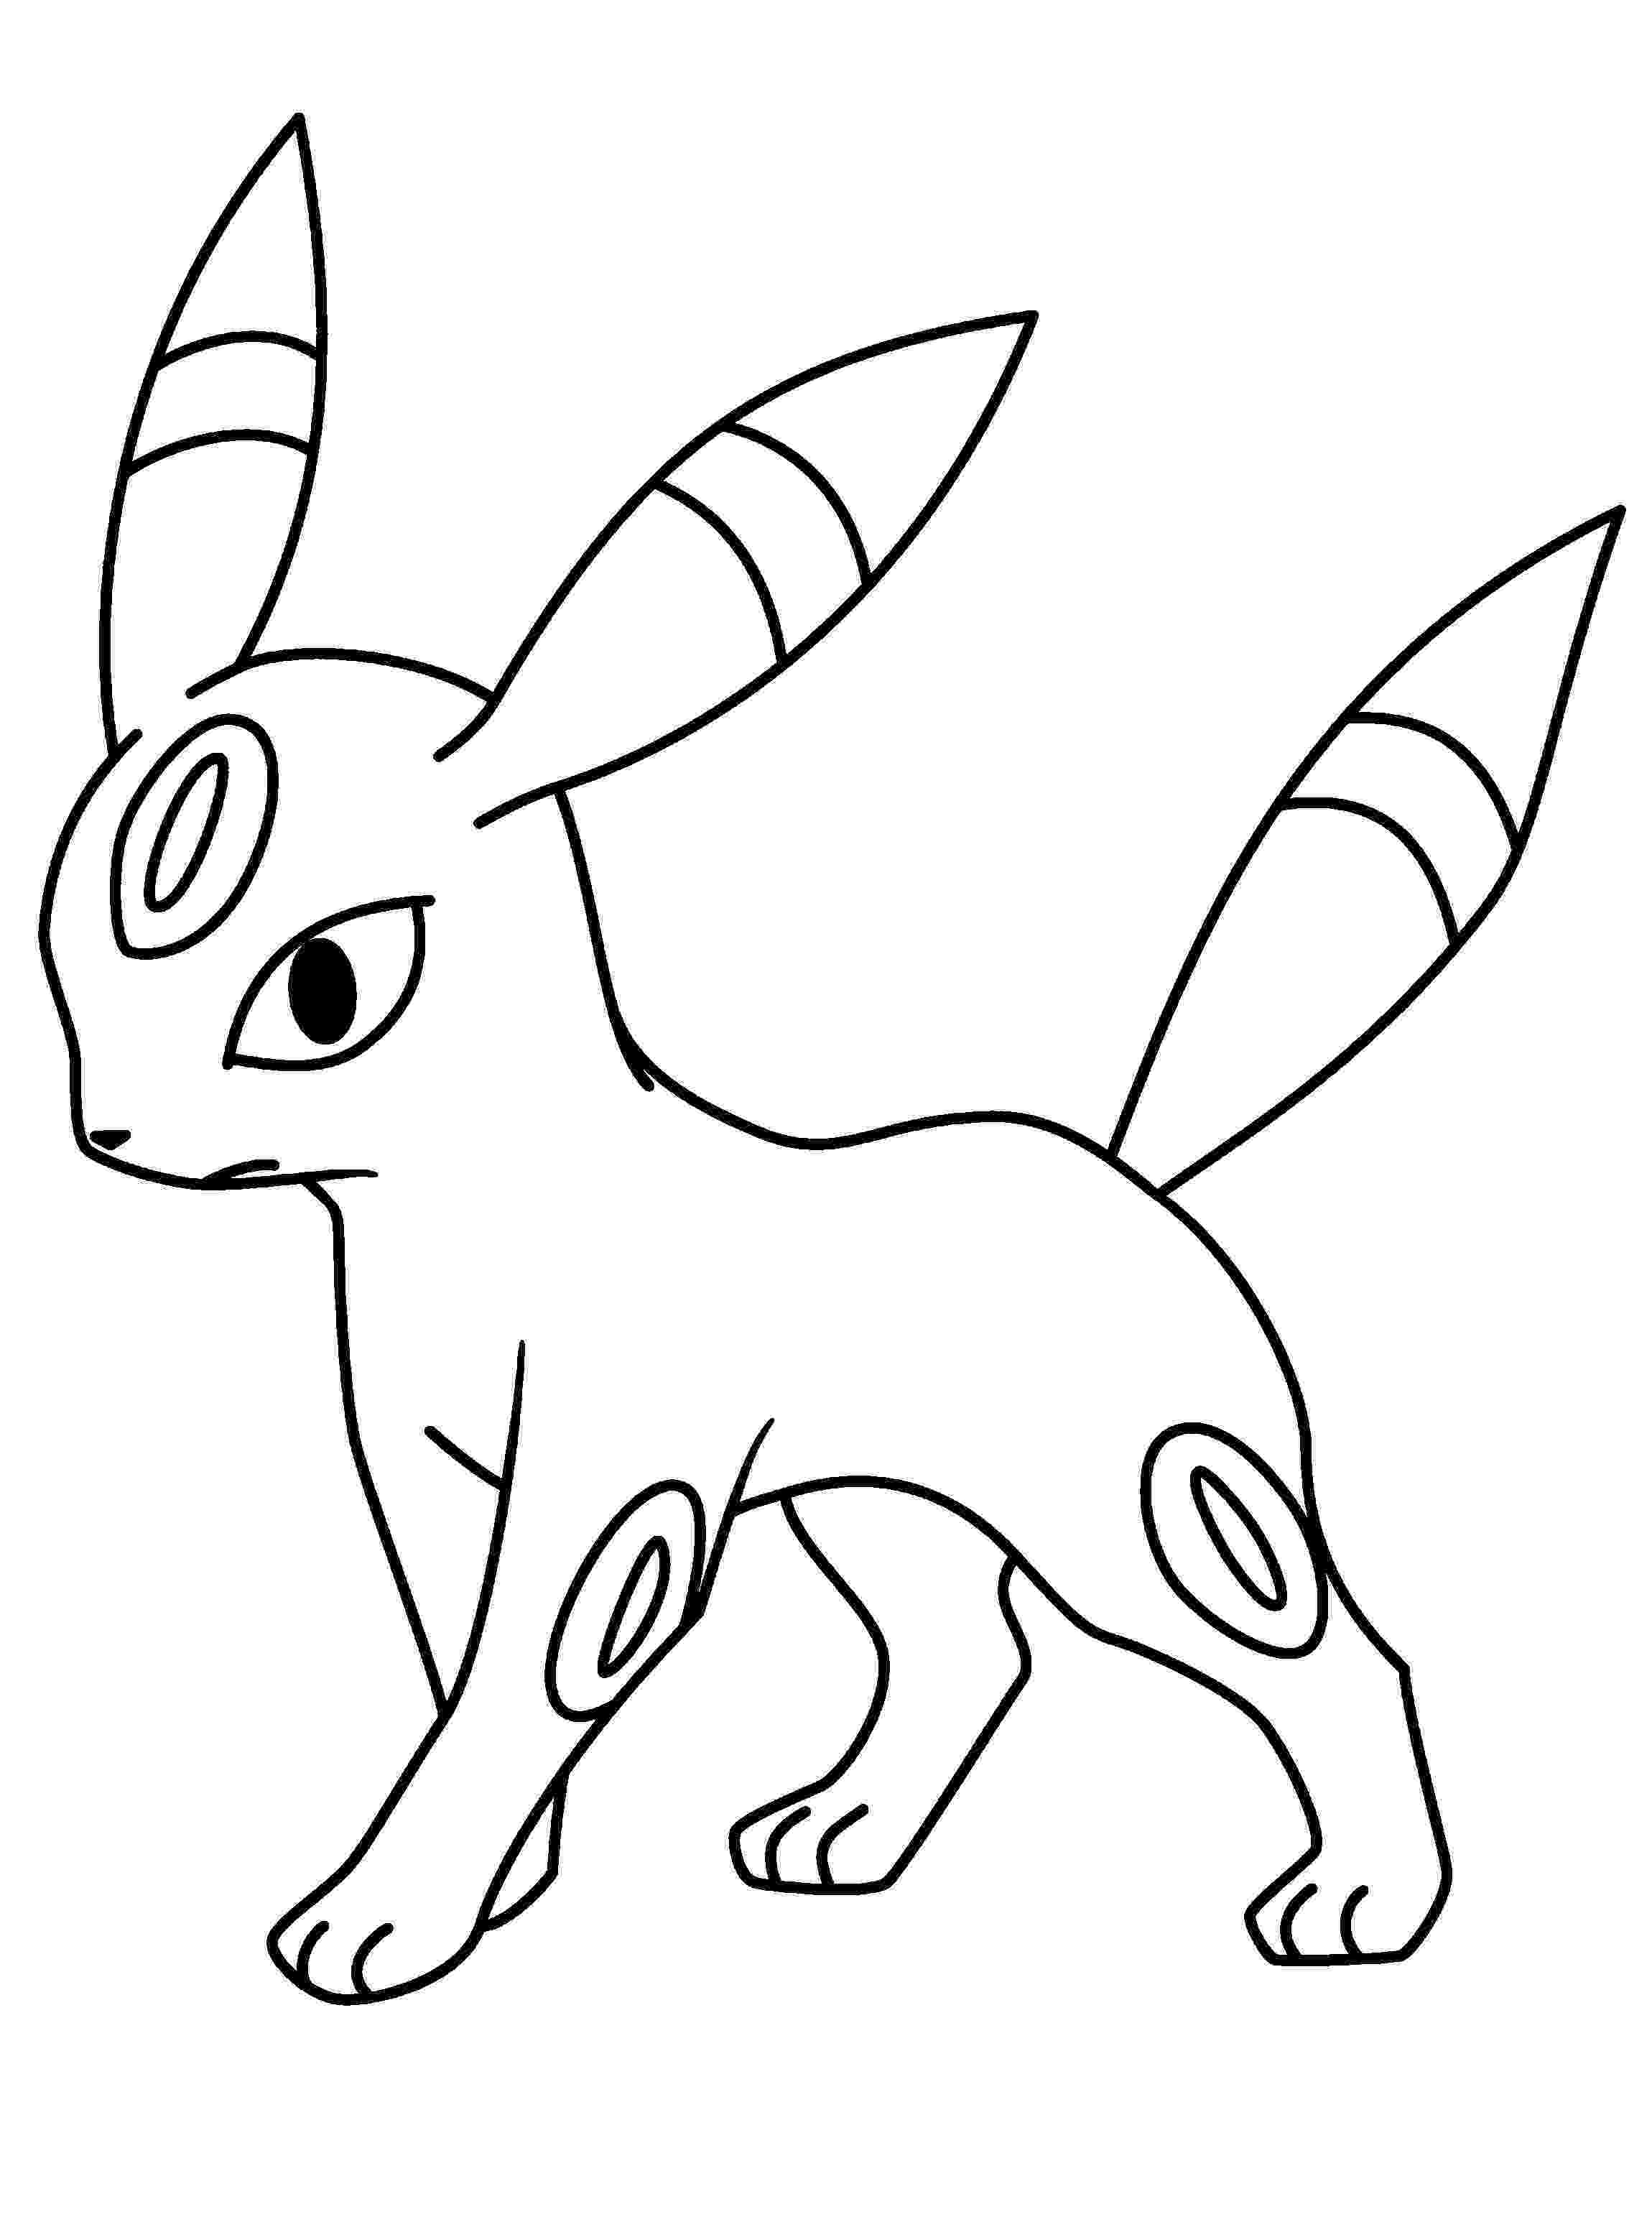 cute pokemon coloring pages cute pokemon coloring pages getcoloringpagescom pages cute pokemon coloring 1 1